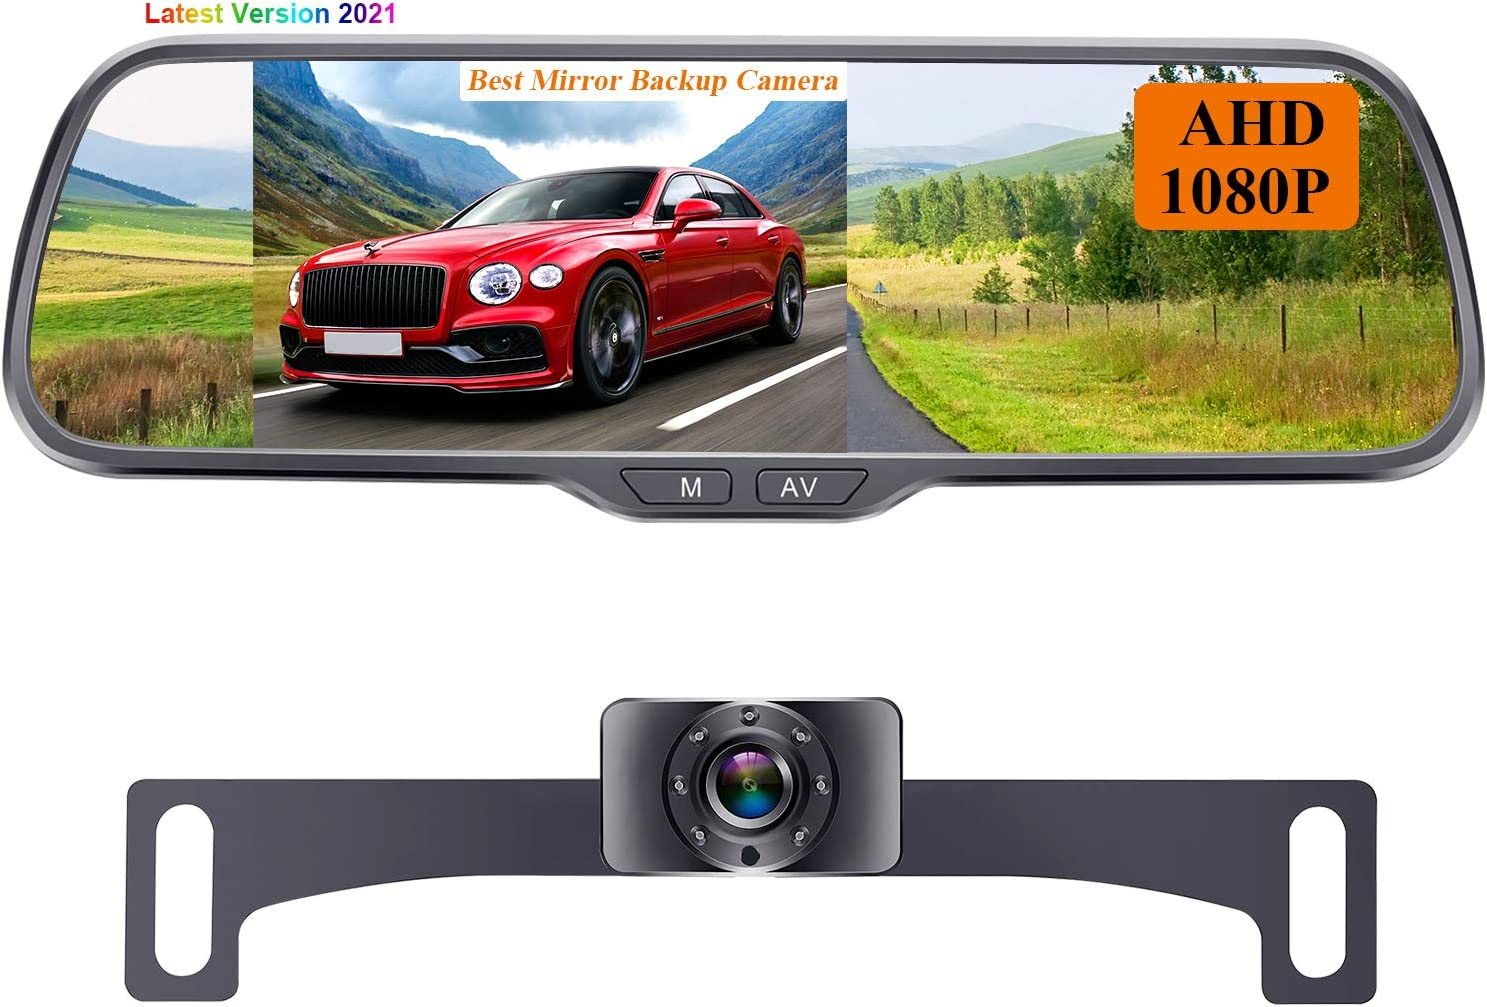 Rohent N01 AHD 1080P Backup Camera with 5